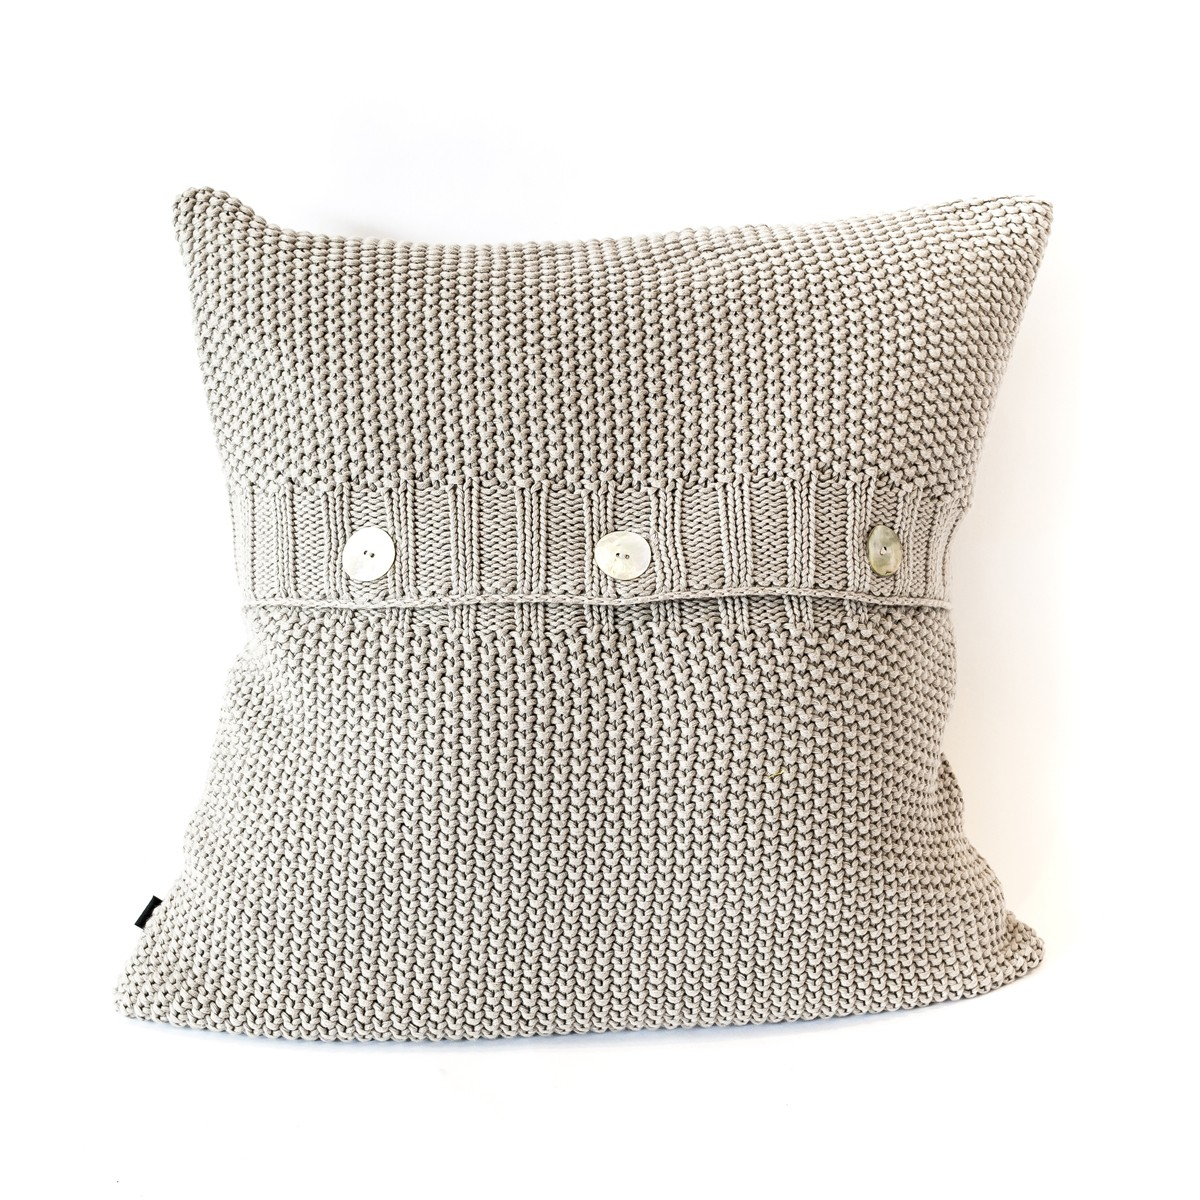 Grace - Moss Stitch Cushion Cover Stone